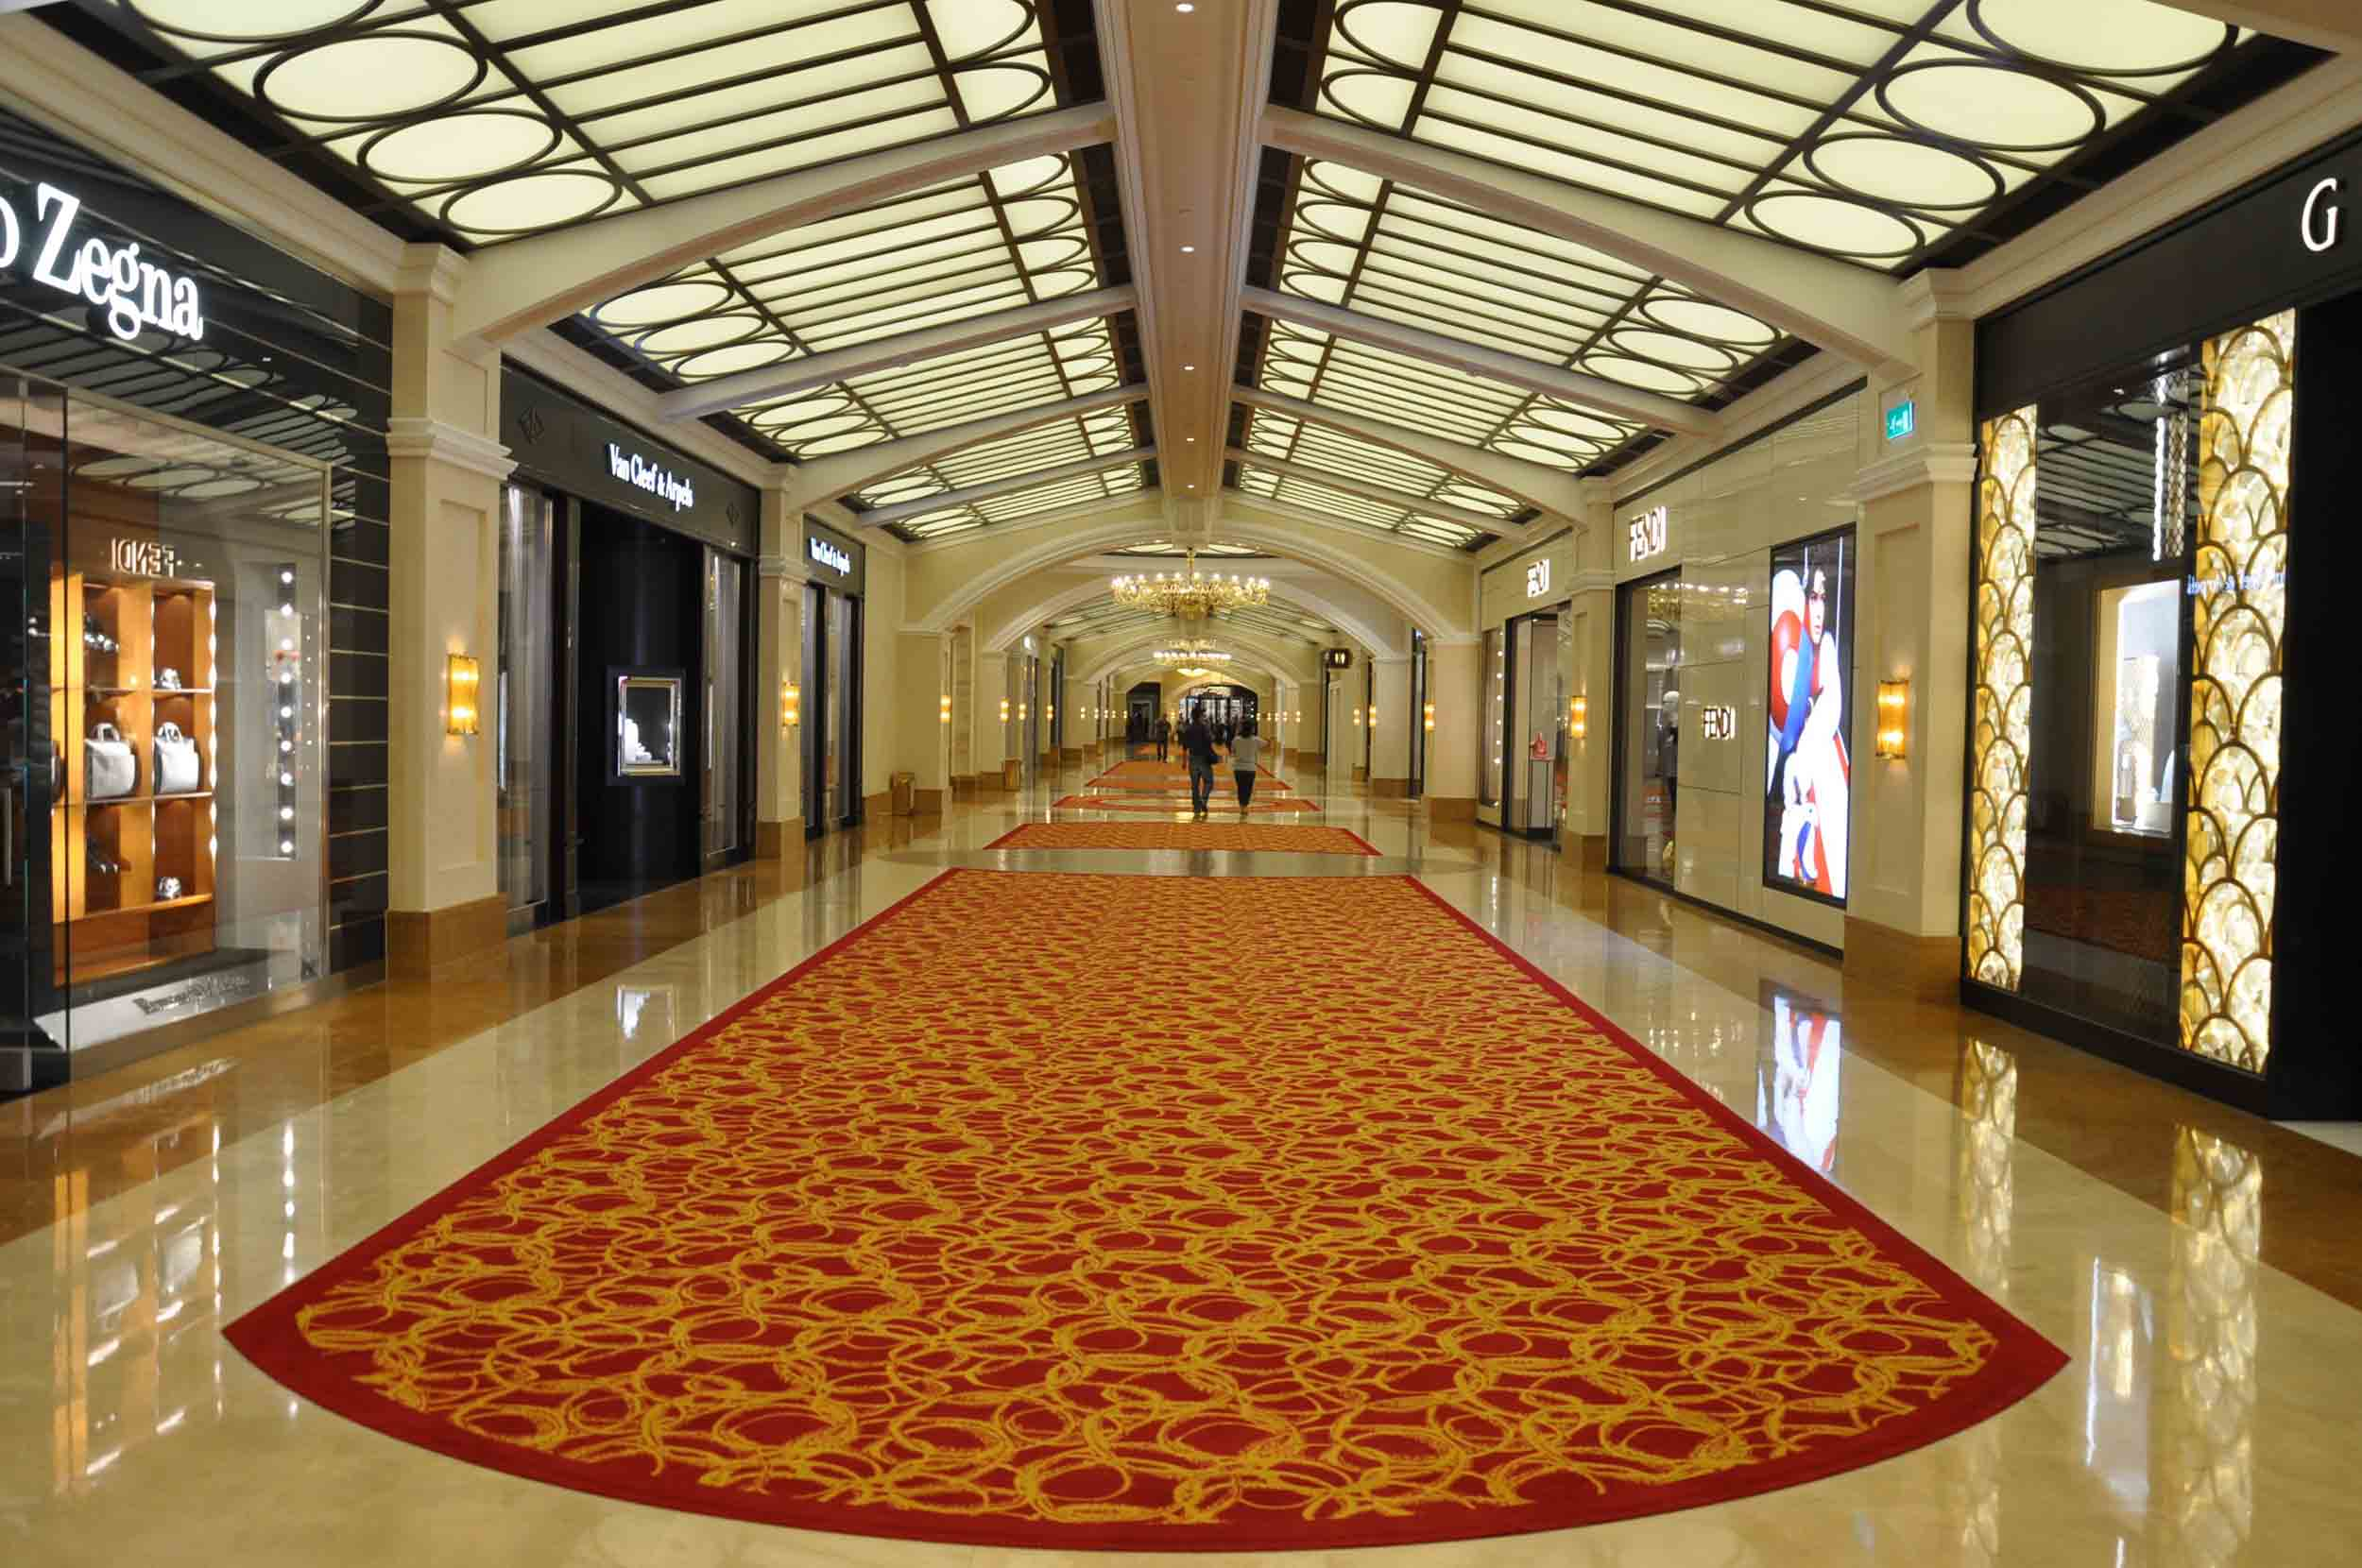 Studio City Macau shopping mall